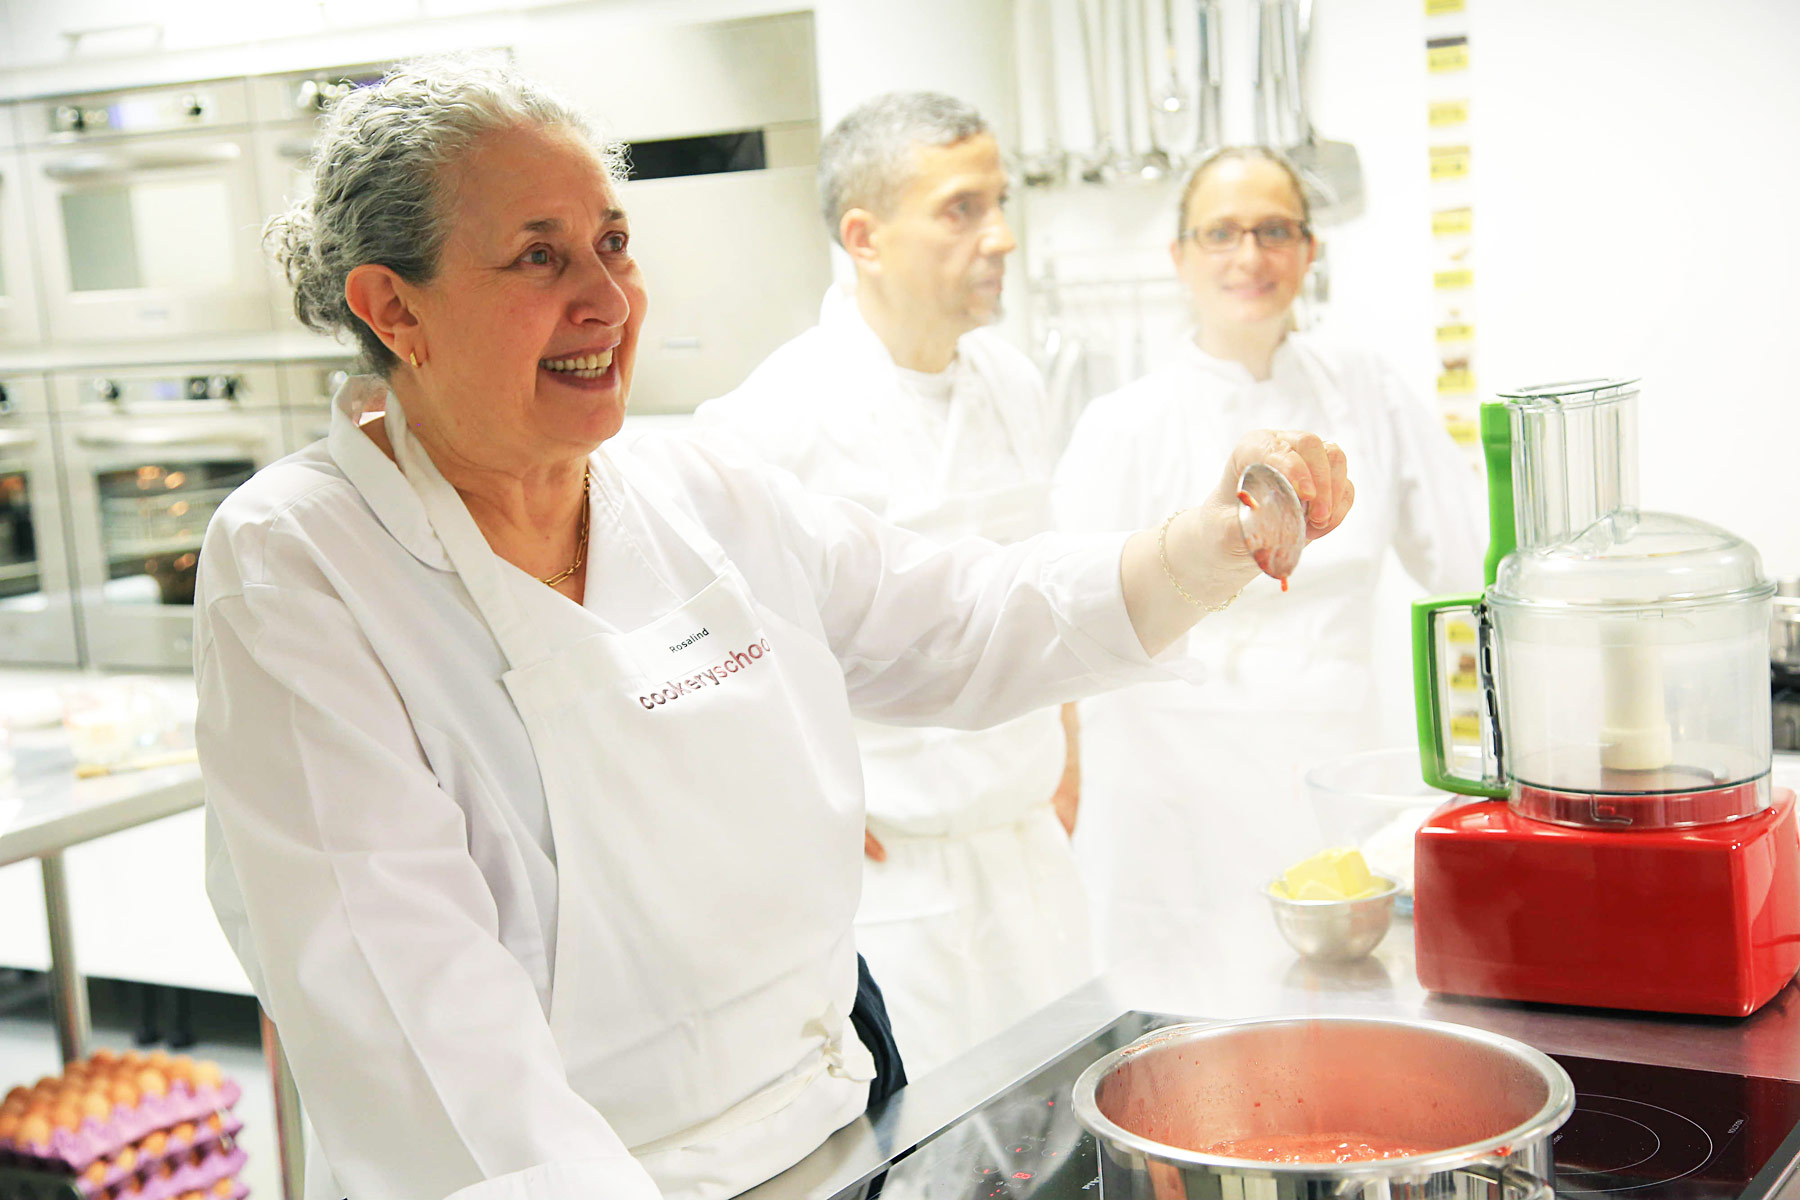 rosalind rathouse of the cookery school at little portland